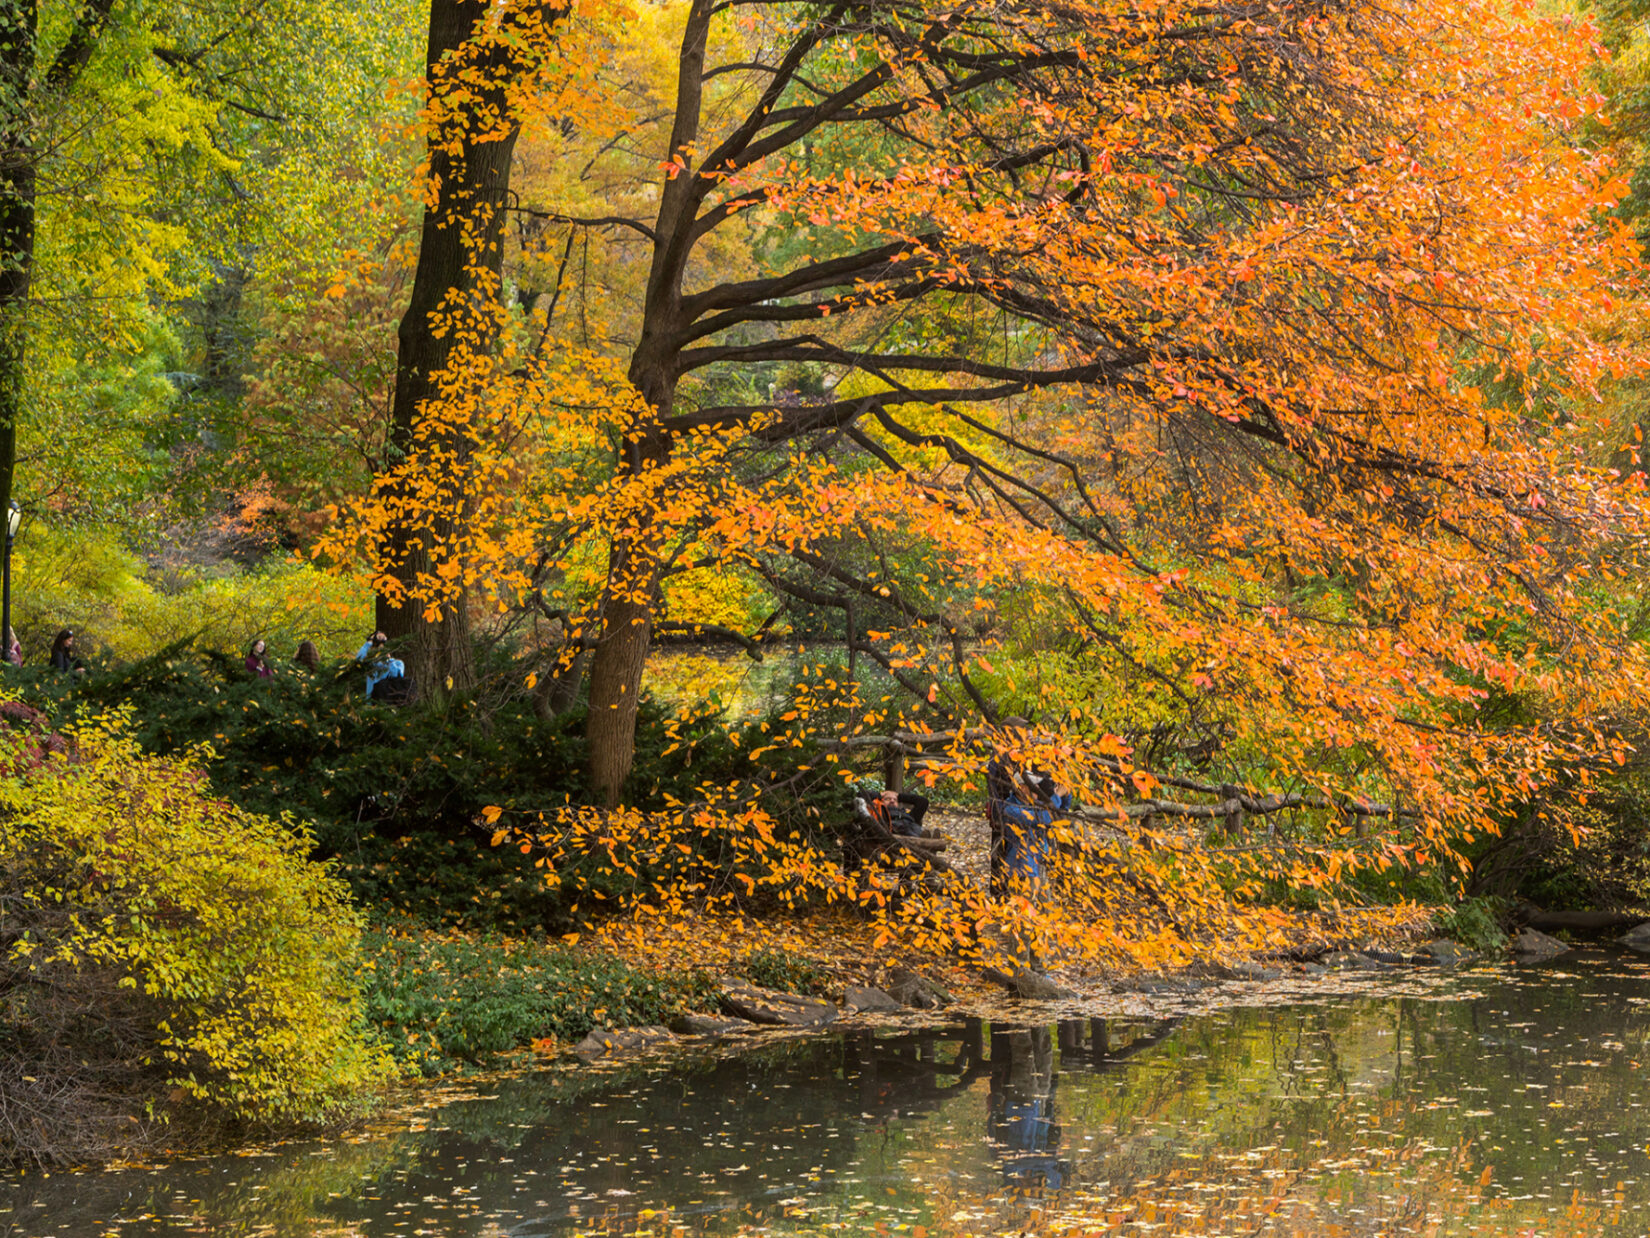 Autumnal leaves of rust and green are reflected in the water below